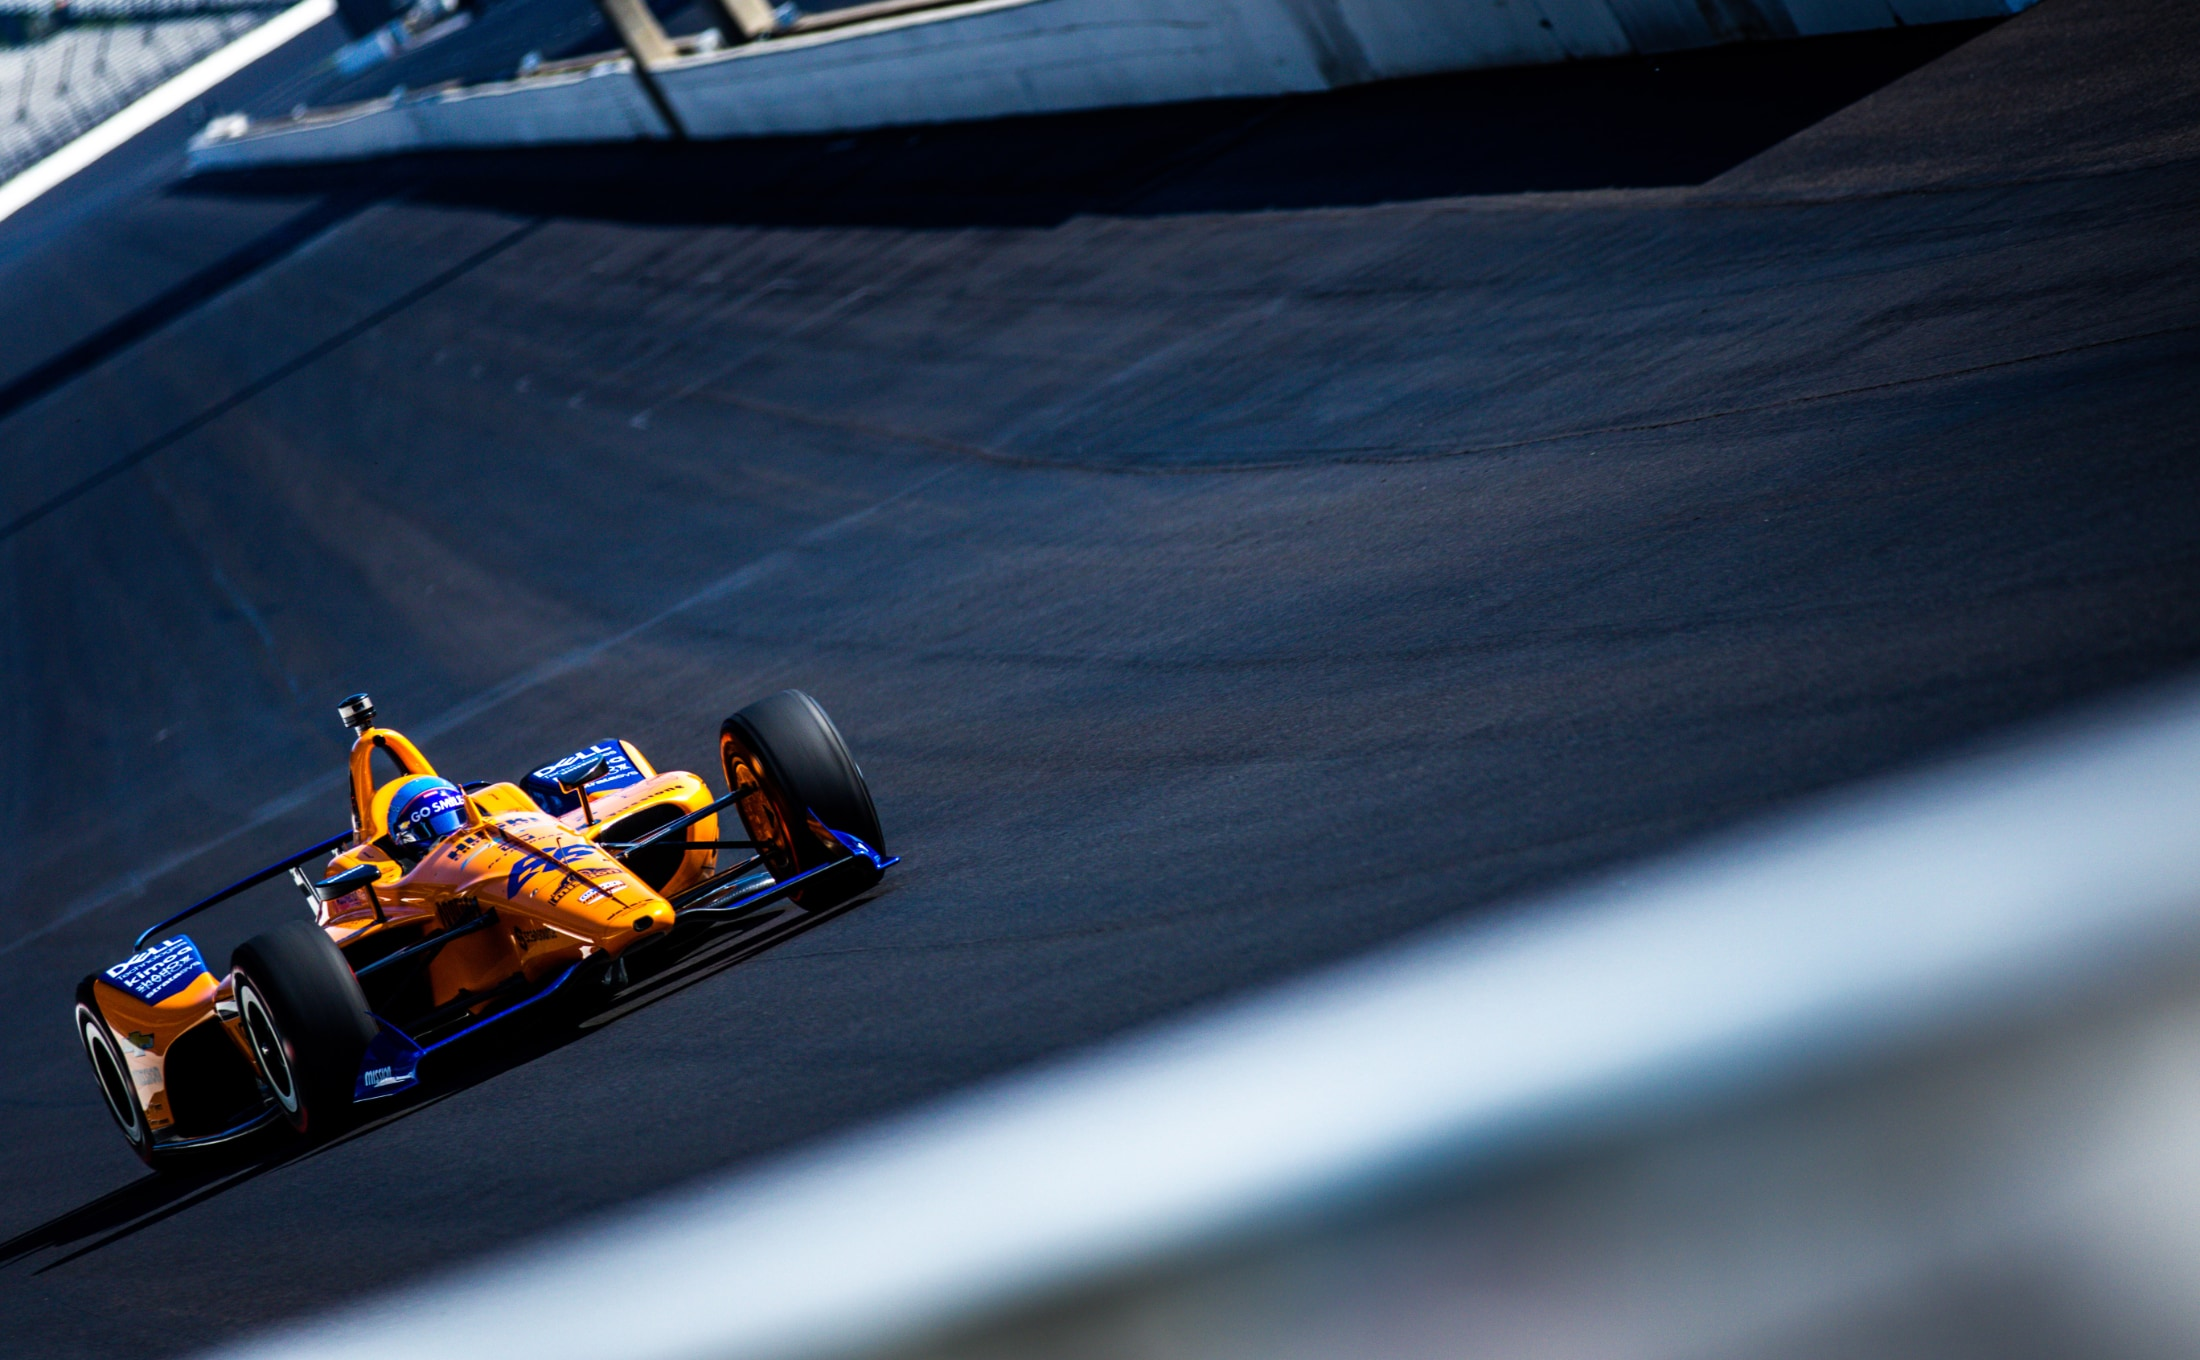 Fernando Alonso sails into IMS Turn 1 in Indy 500 practice